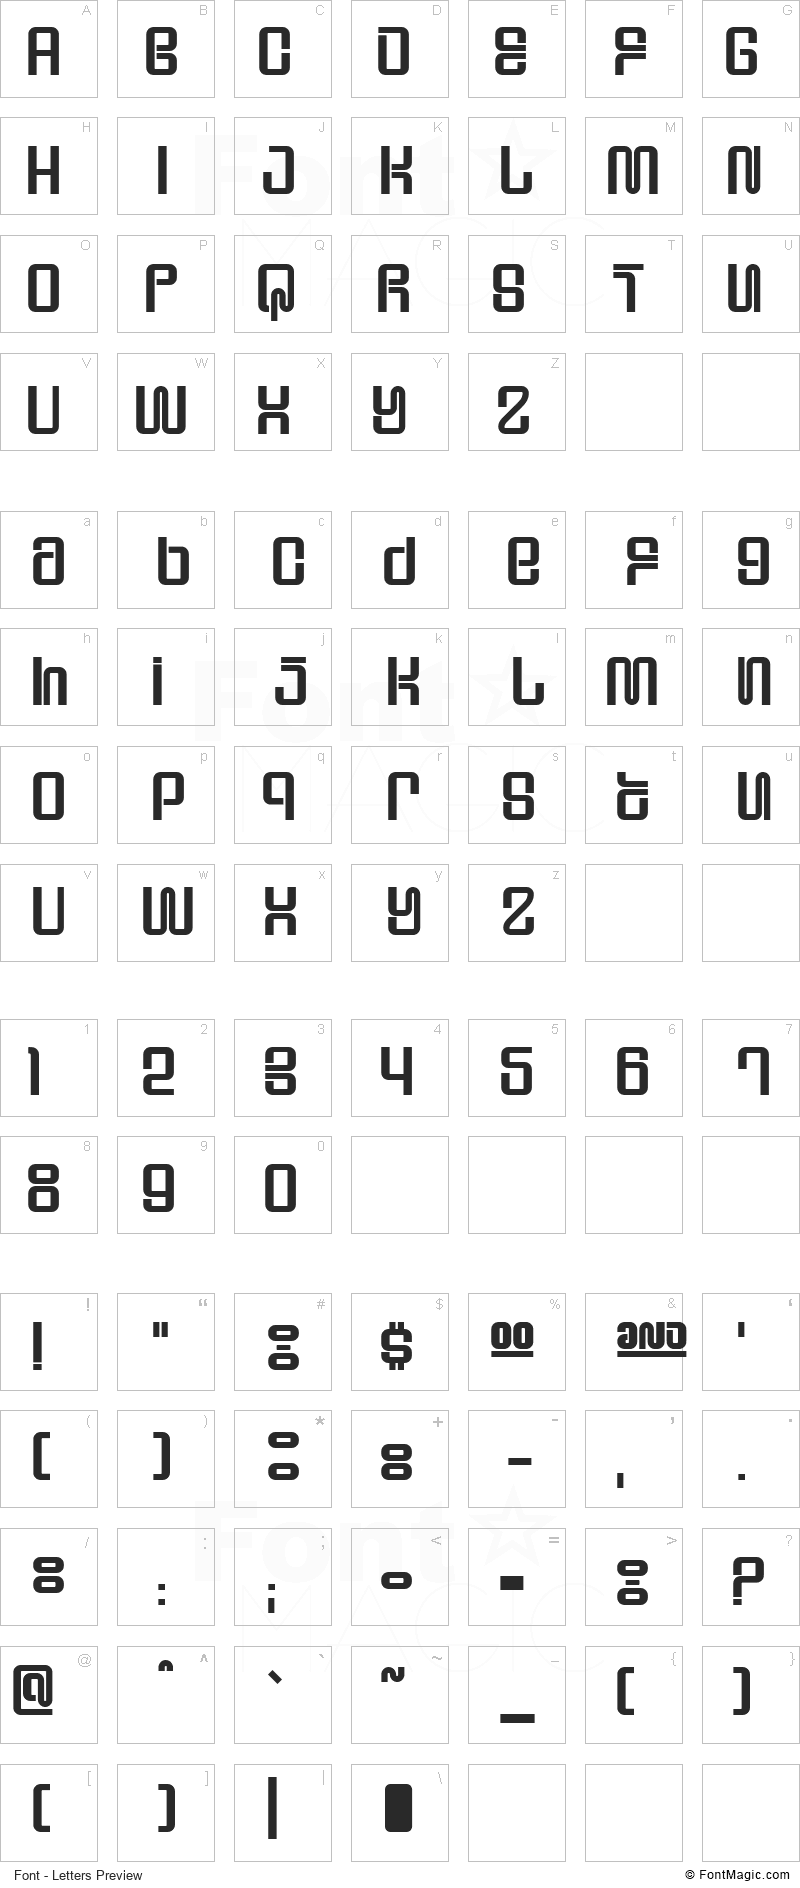 Supervixen Font - All Latters Preview Chart